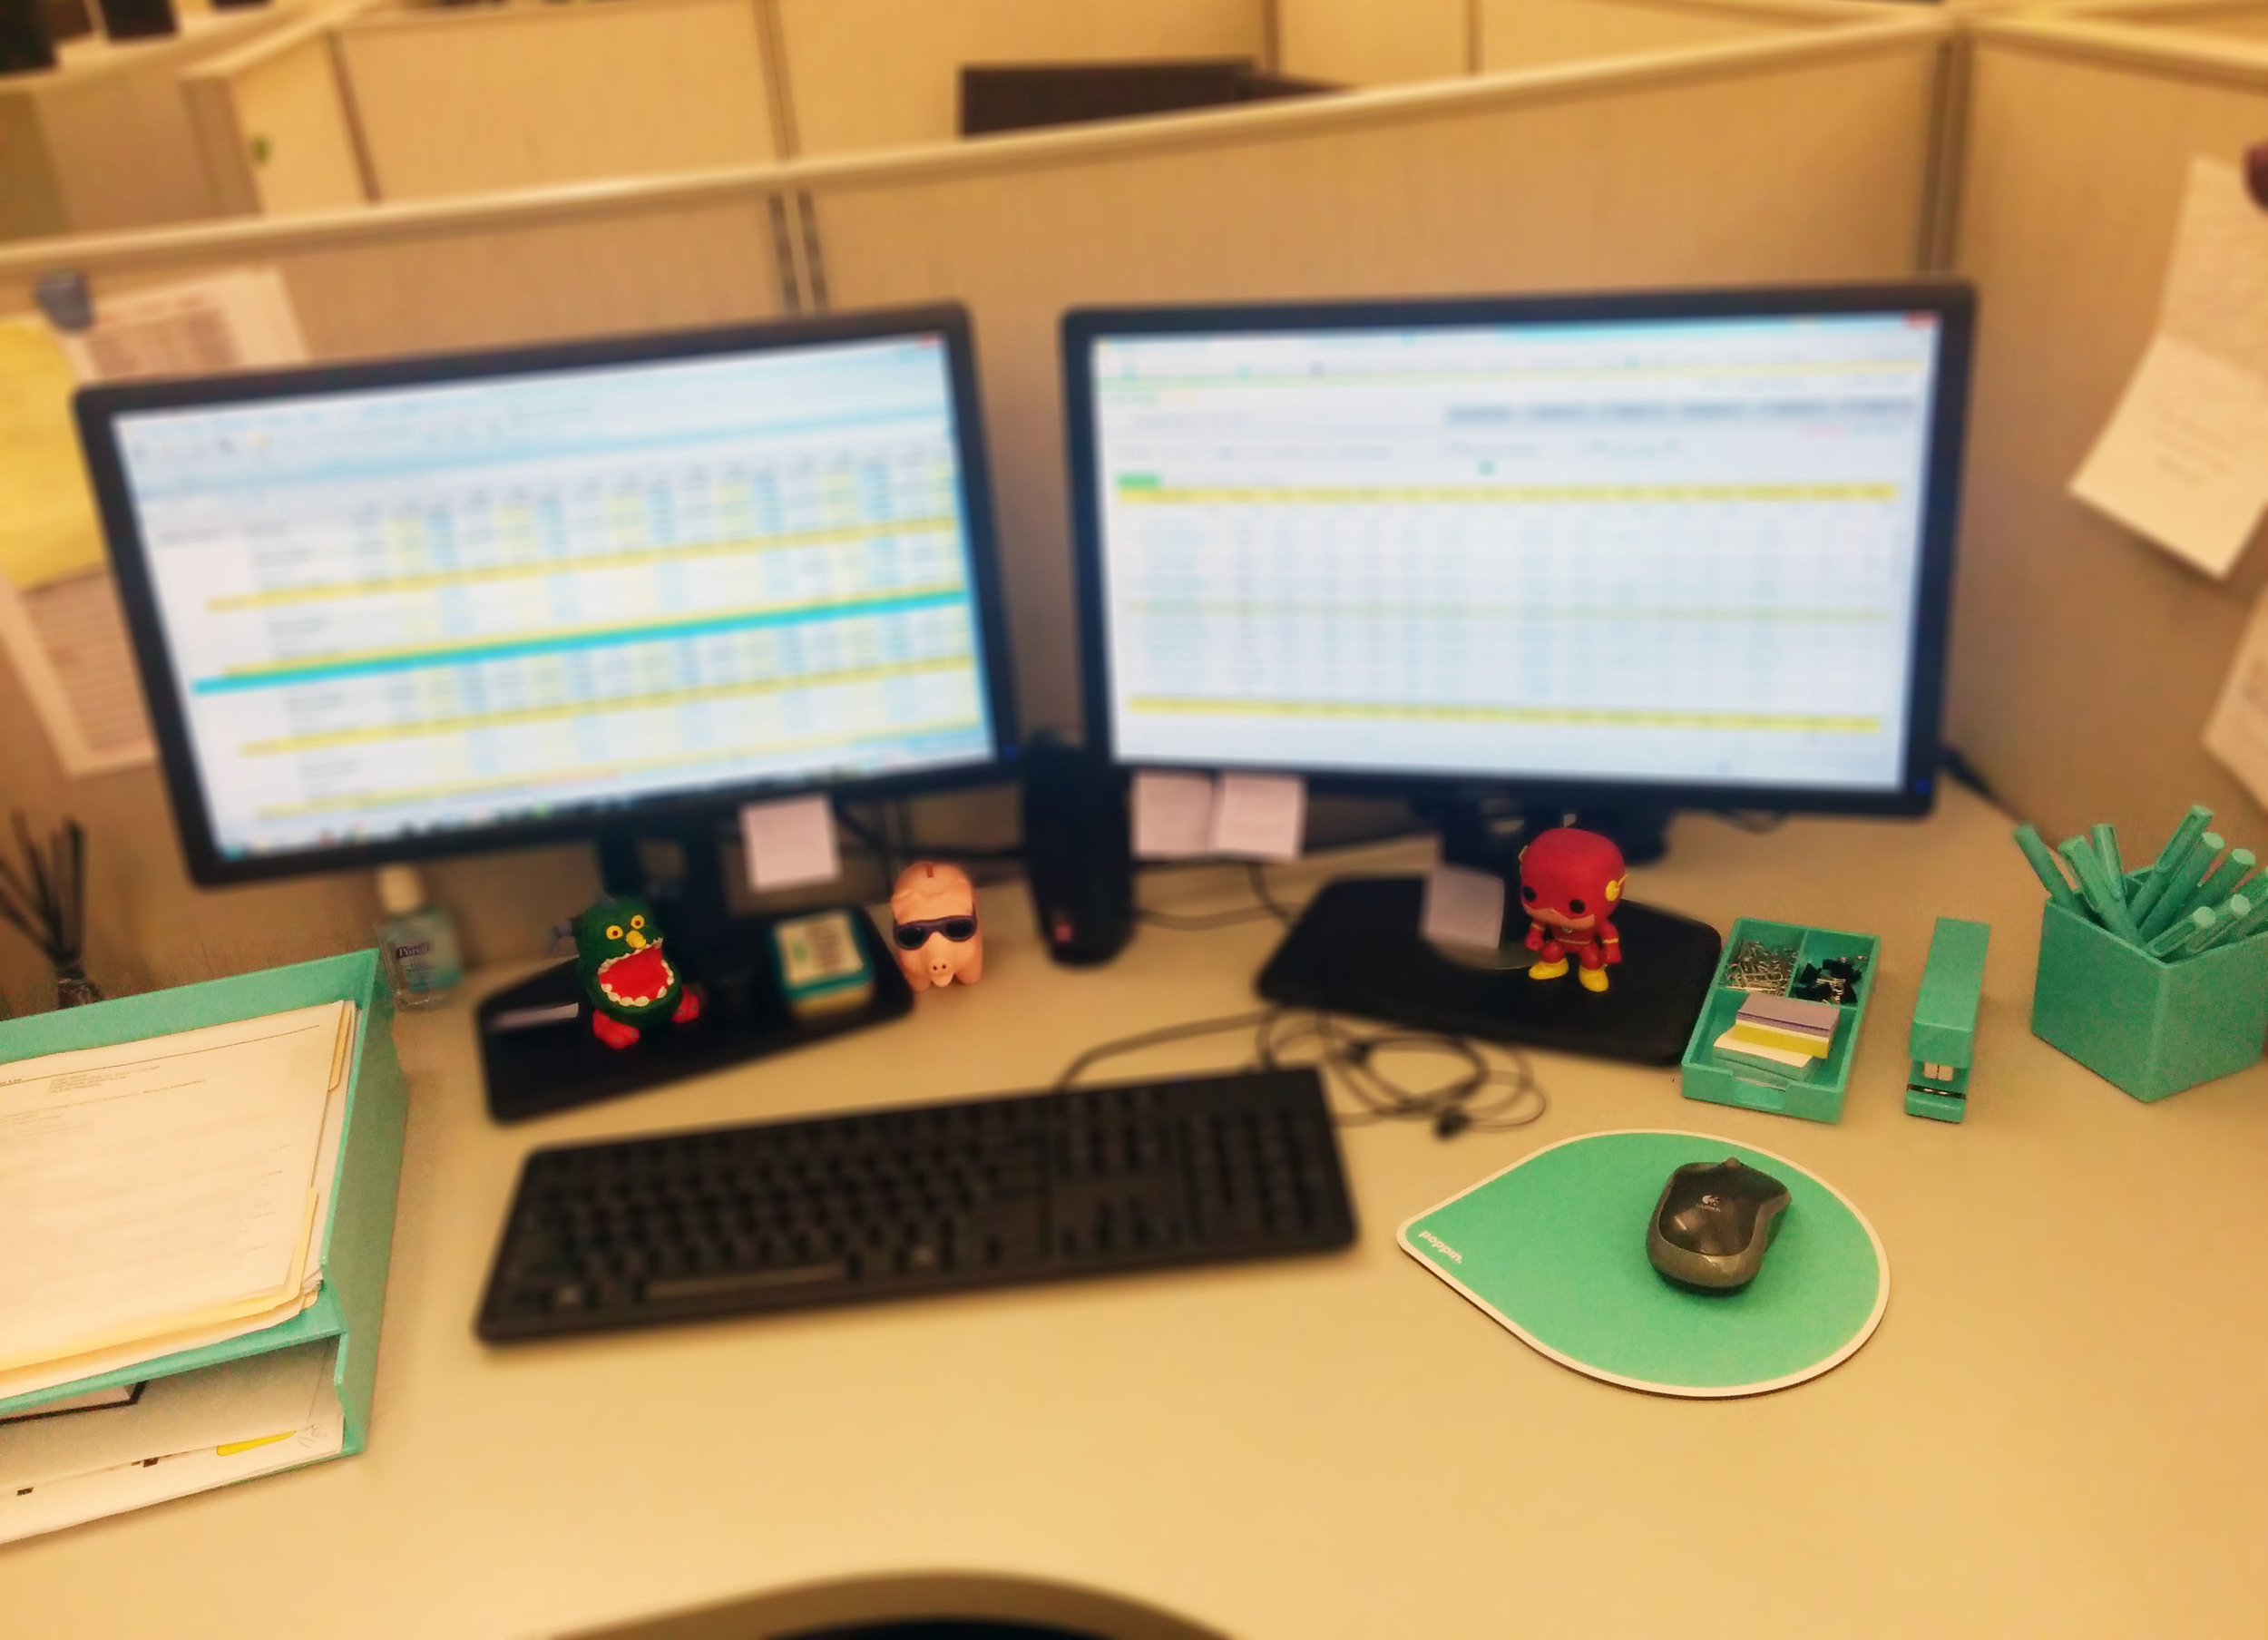 Shiny new desk organizers! Yes, I blurred out everything else. Work is confidential! ;)